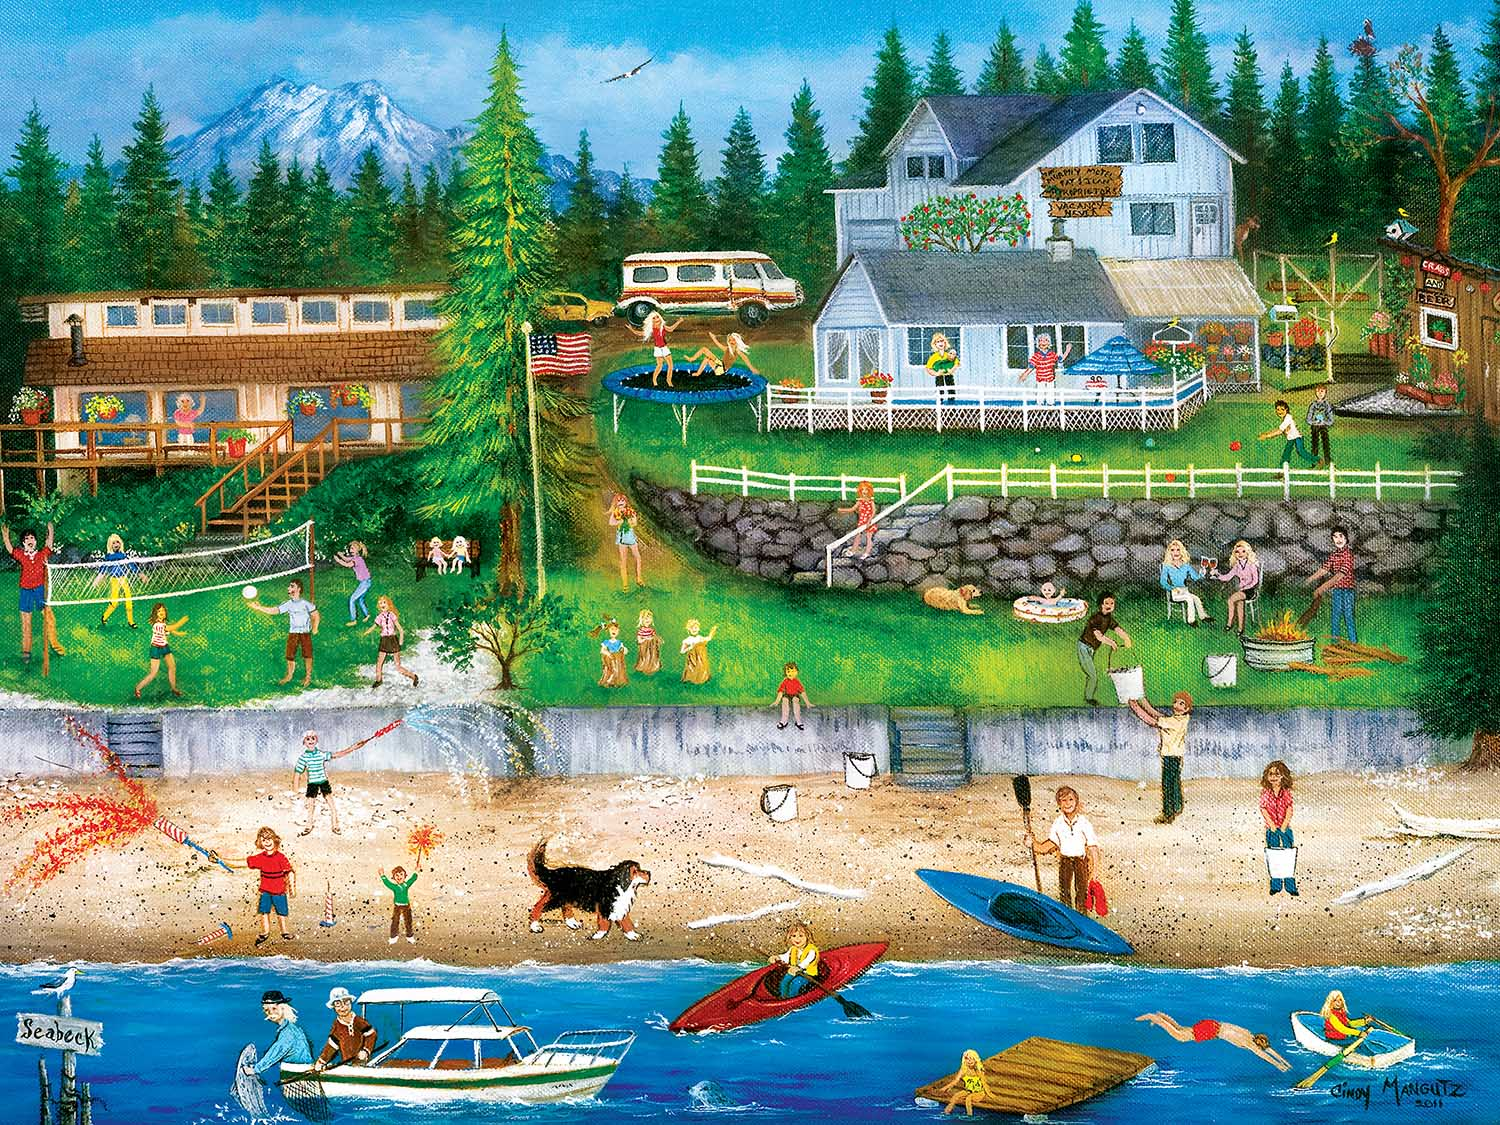 4th of July at Seabeck Fourth of July Jigsaw Puzzle